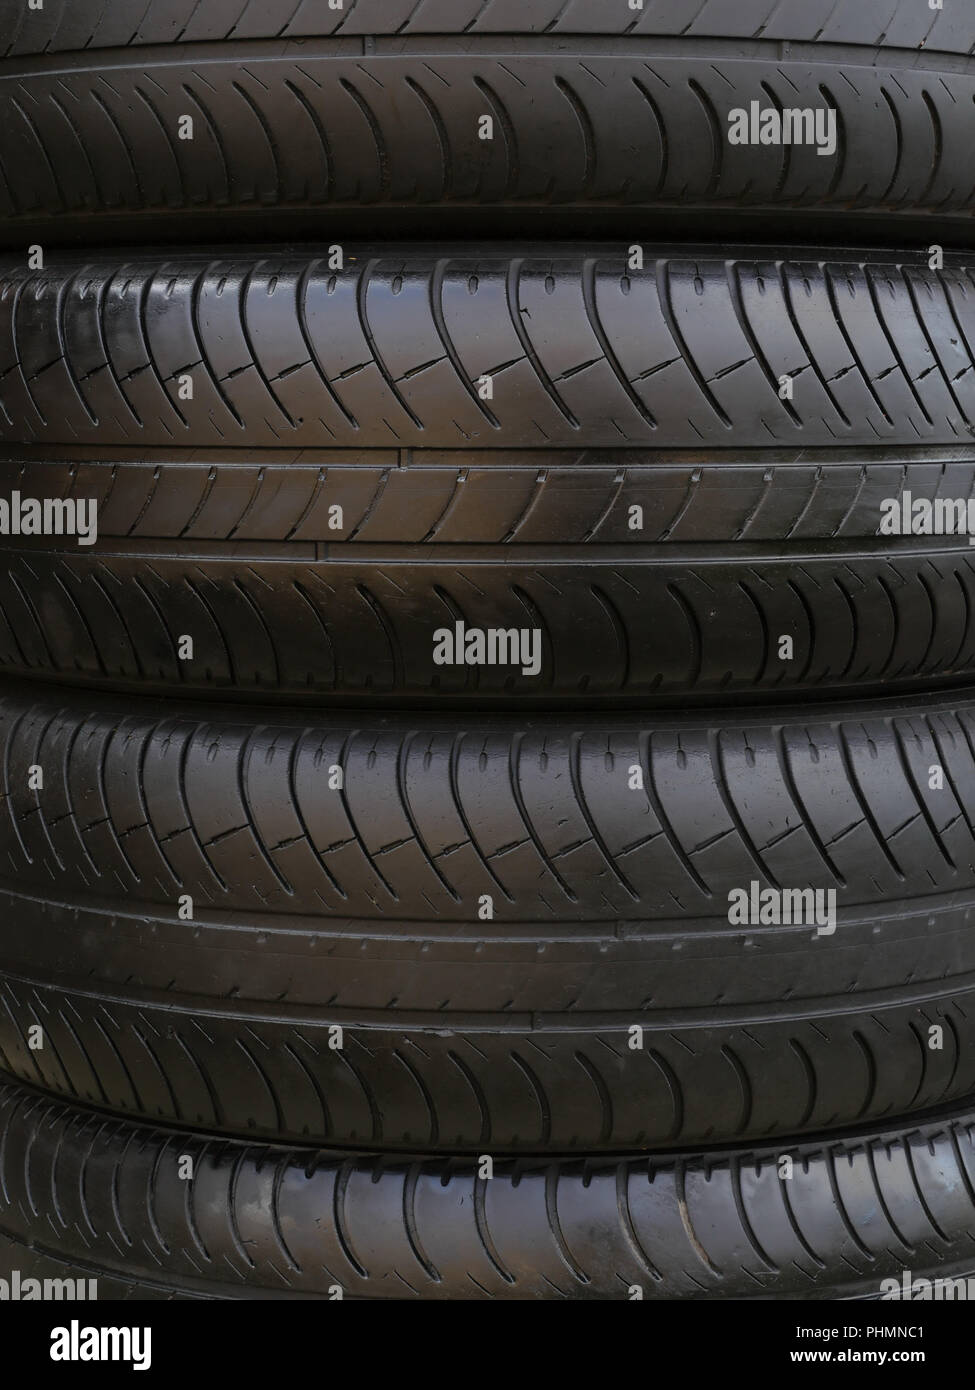 Stack of car tires - Stock Image